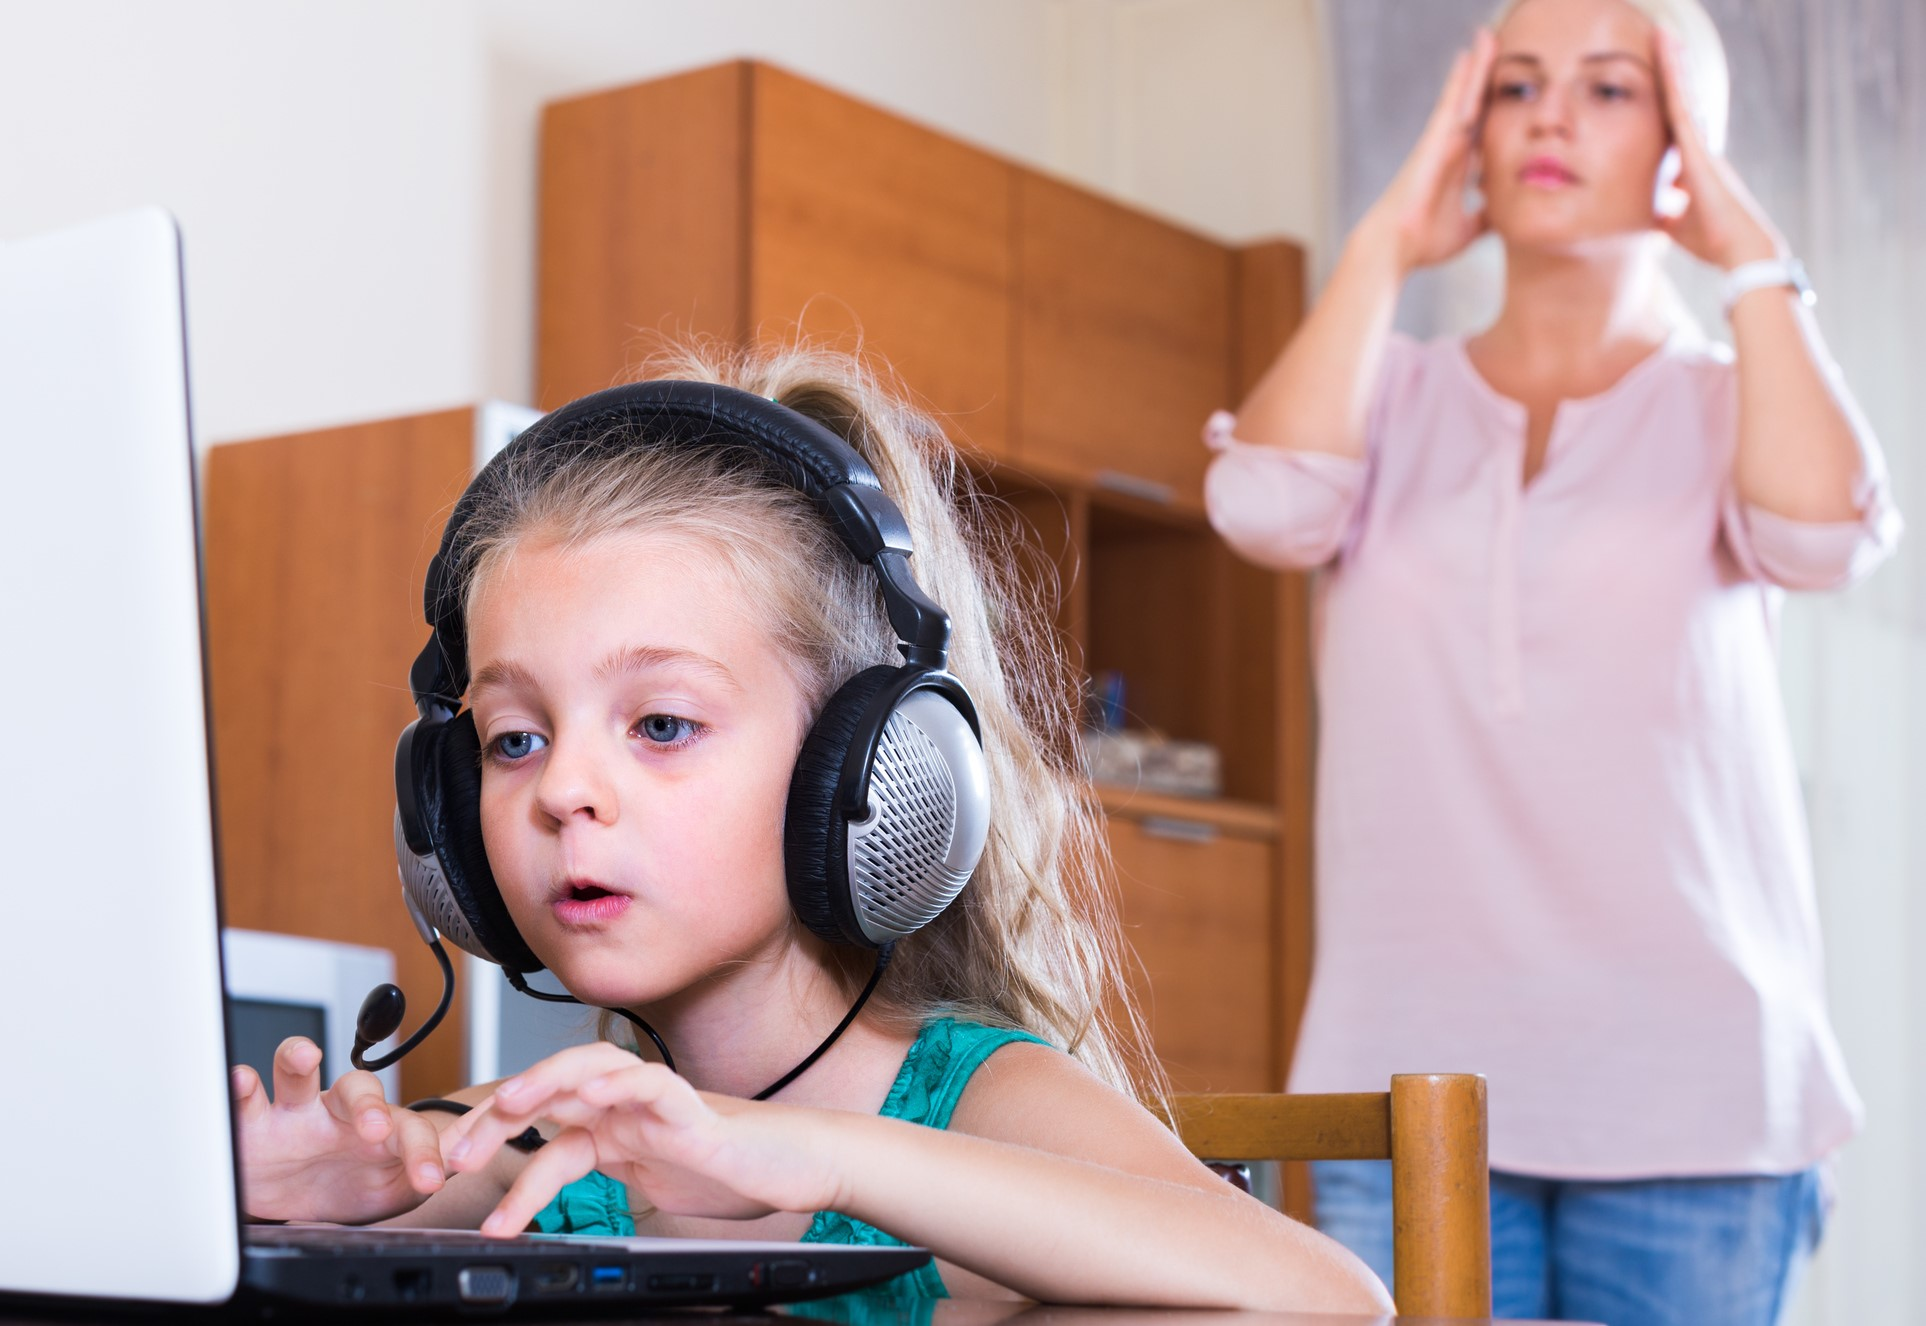 Terrified mother watching daughter using laptop instead of studying